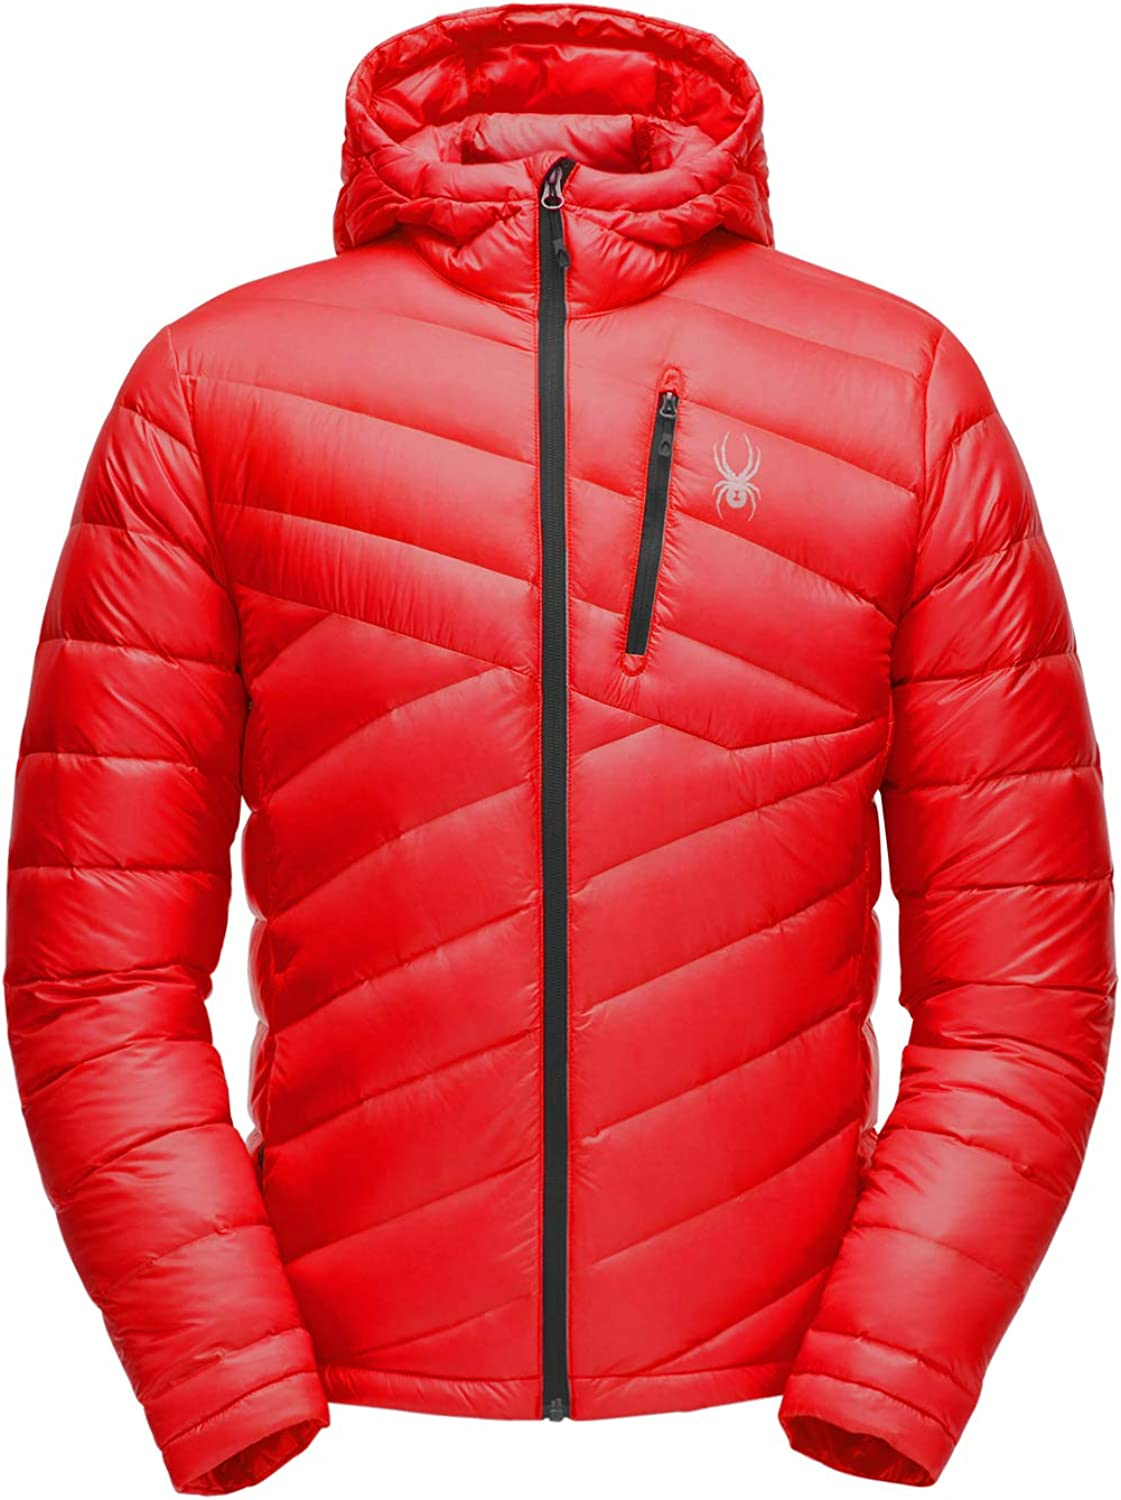 SPYDER Men/'s Syrround Hoody Waterproof 600 Fill Down Jacket